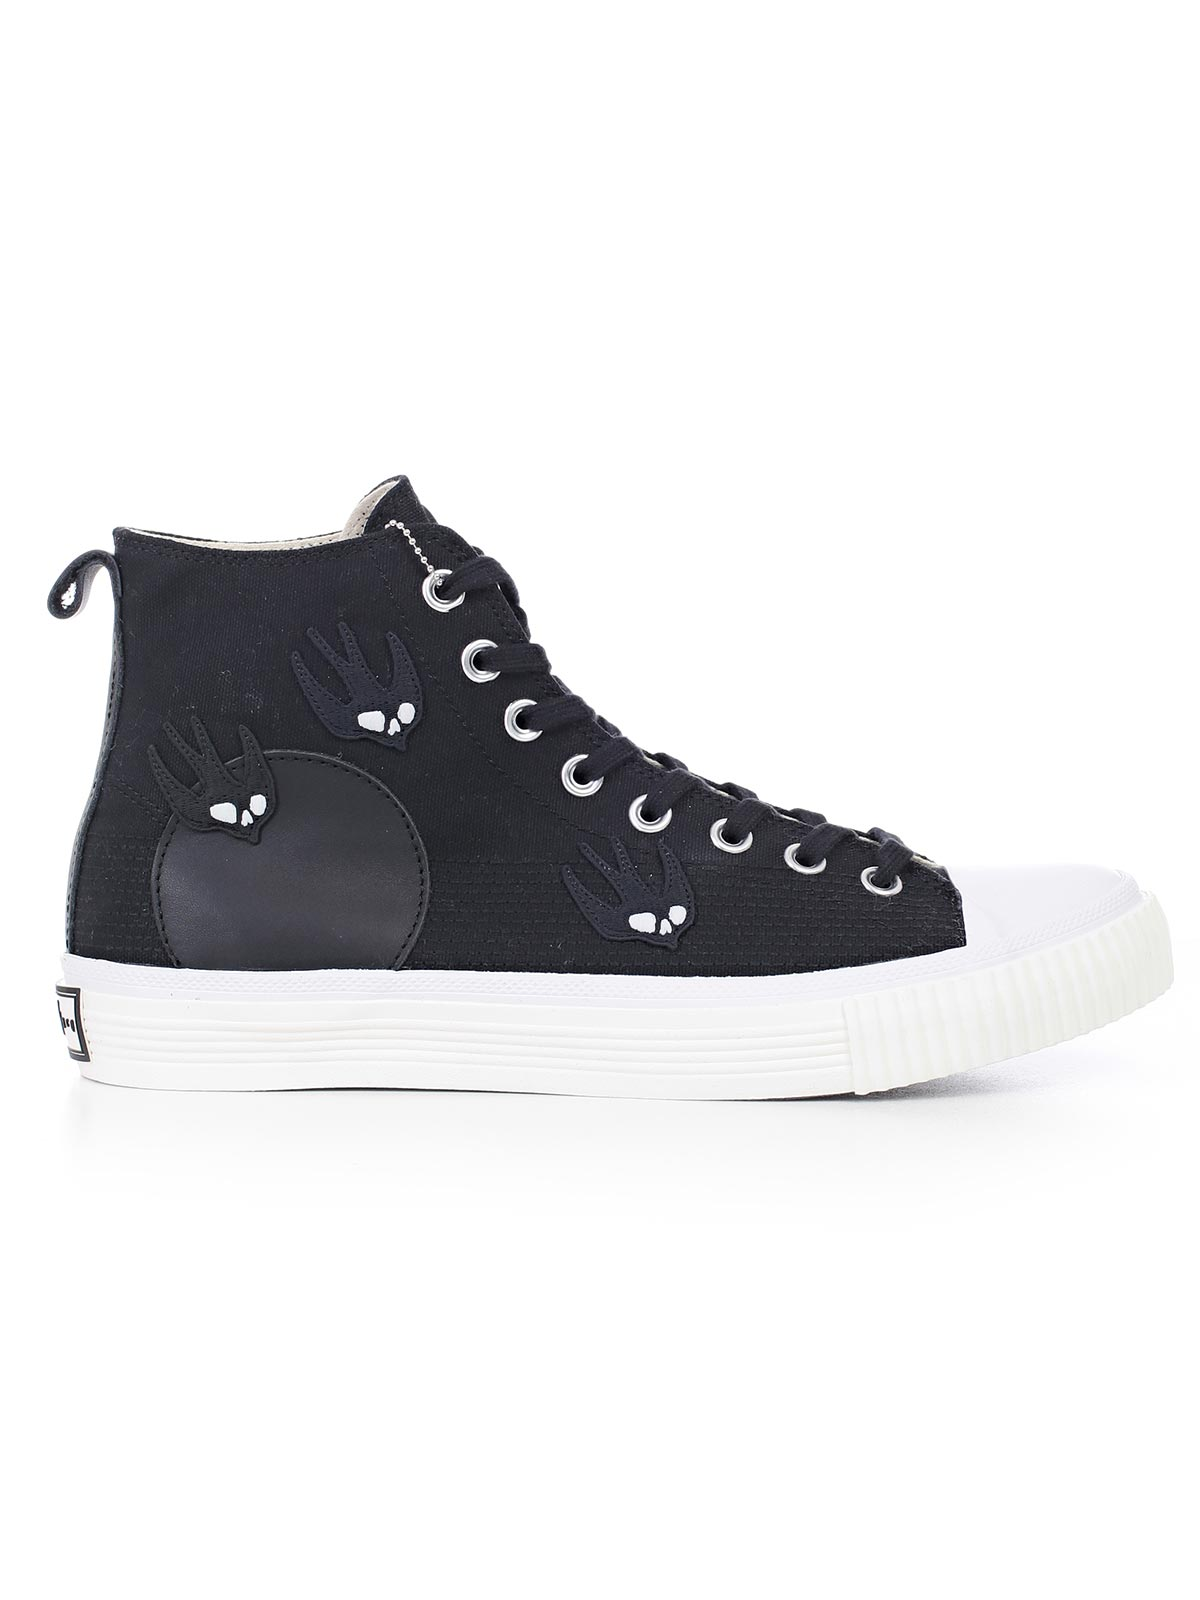 Picture of Mcq Alexander Mcqueen Sneakers